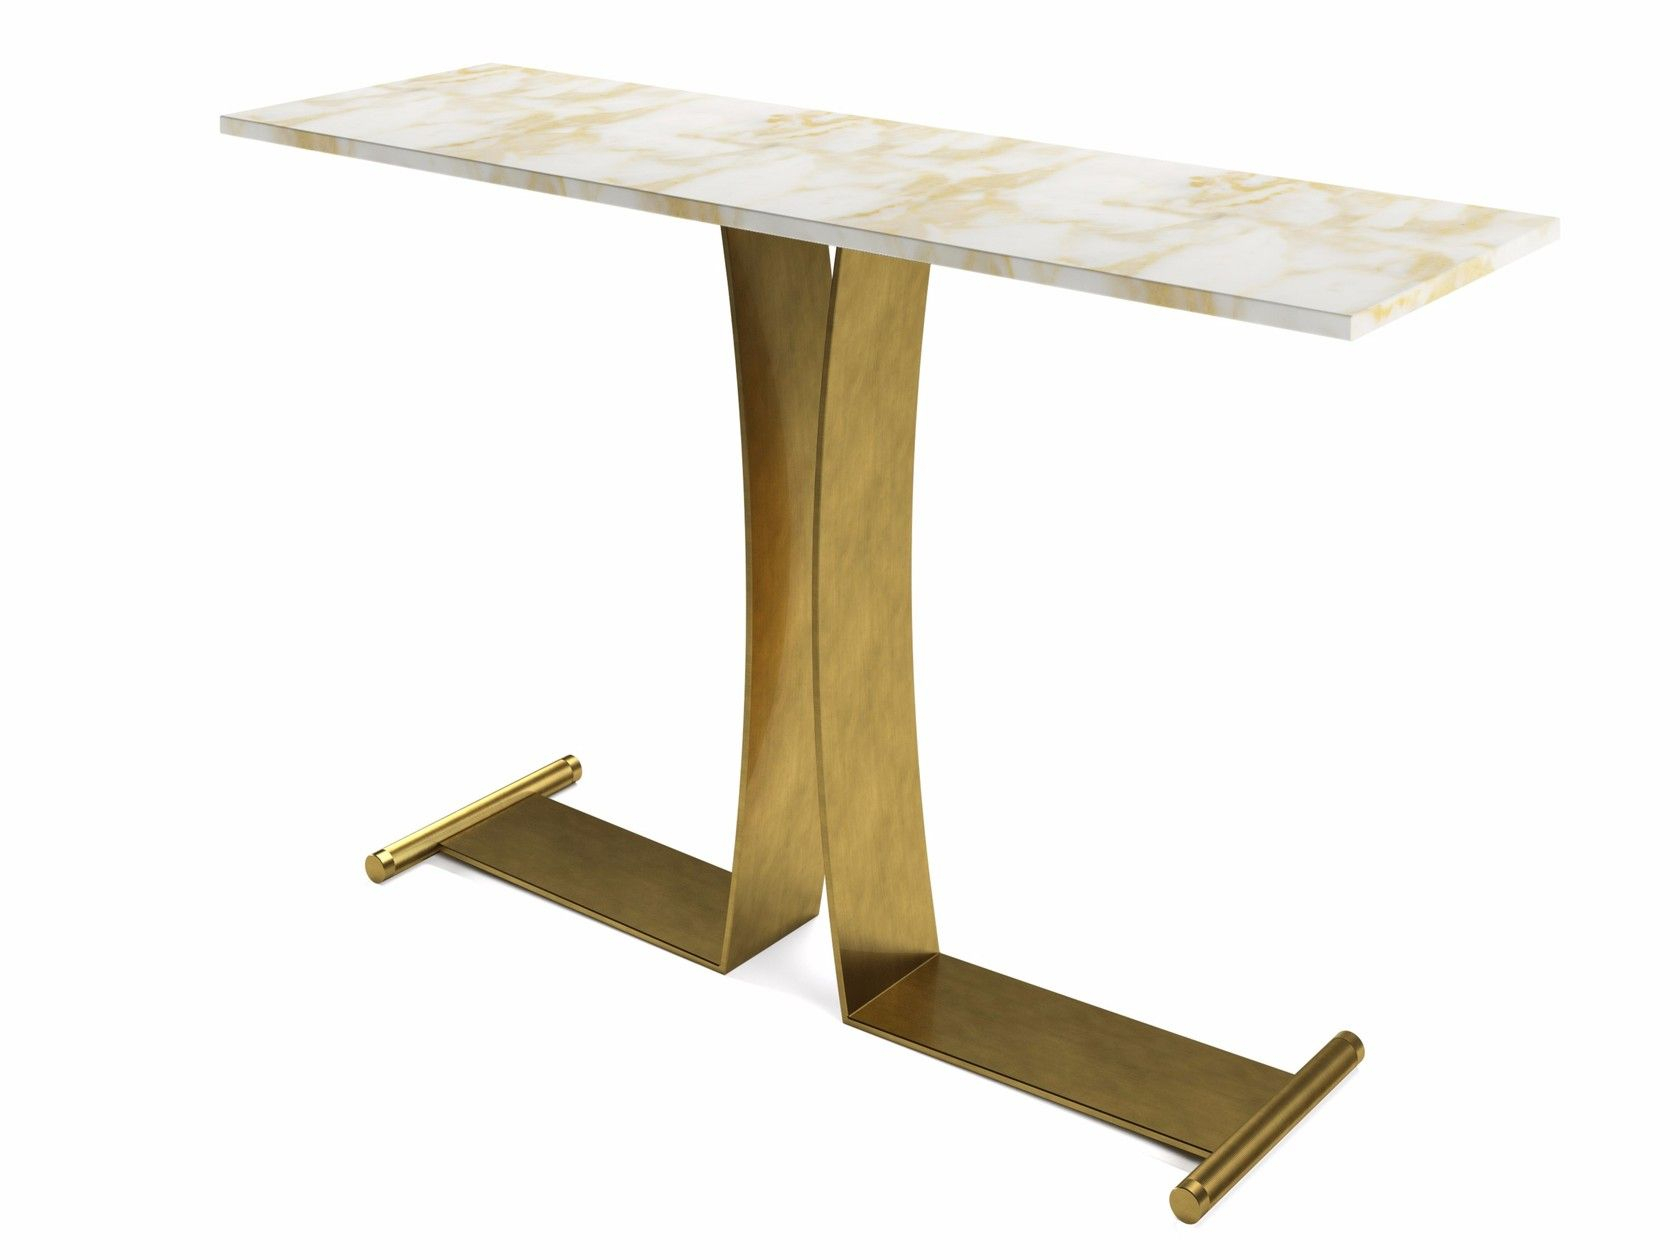 Guy | Console Table In 2018 | 1gja Console Tables | Pinterest Regarding Parsons Grey Marble Top & Dark Steel Base 48x16 Console Tables (View 5 of 30)